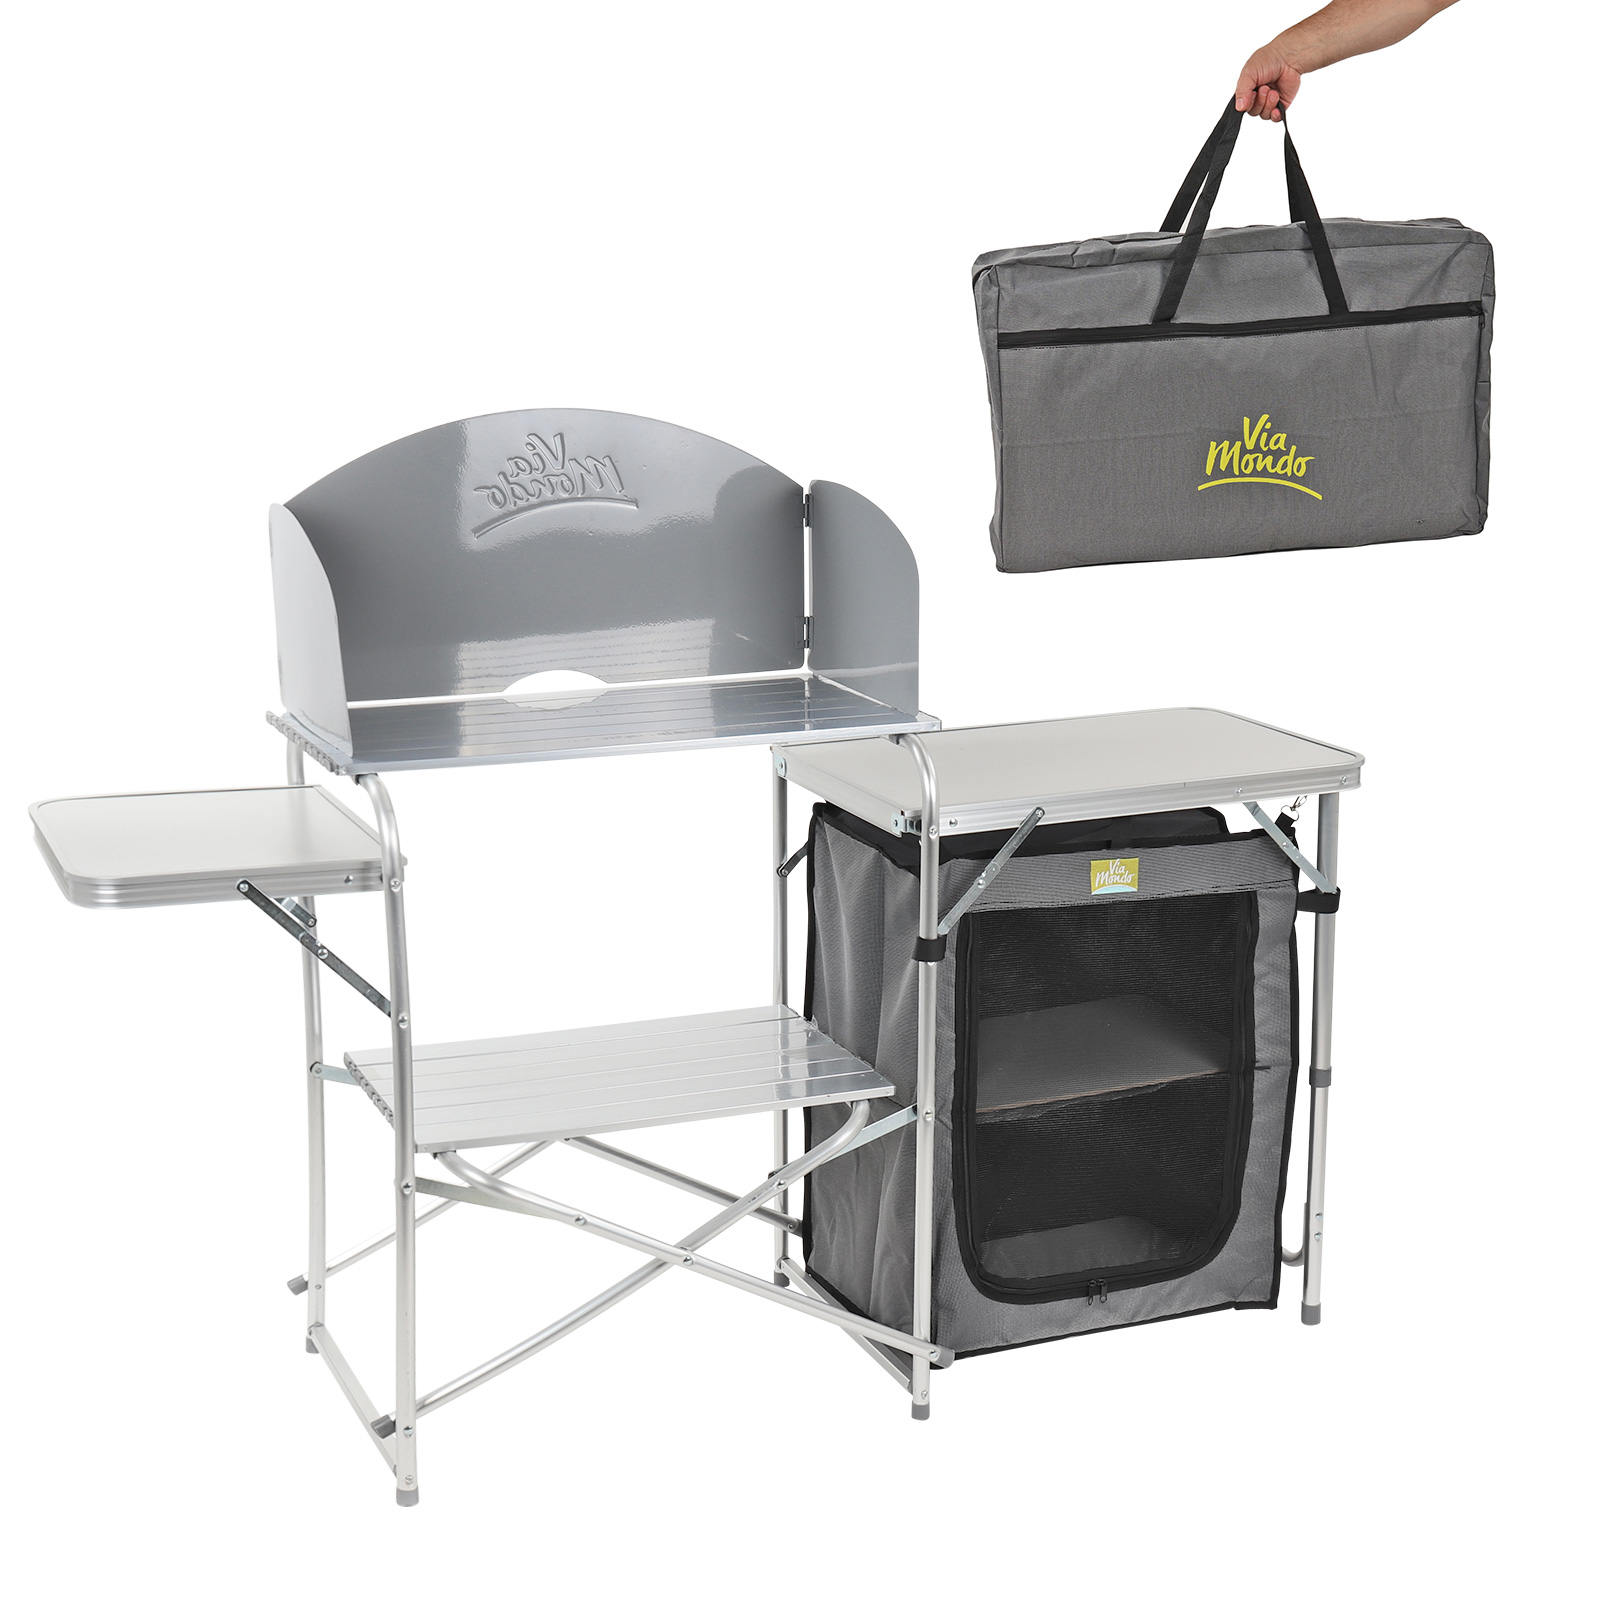 Camping k che maxi klappbar in transporttasche for Camping outdoor kuche